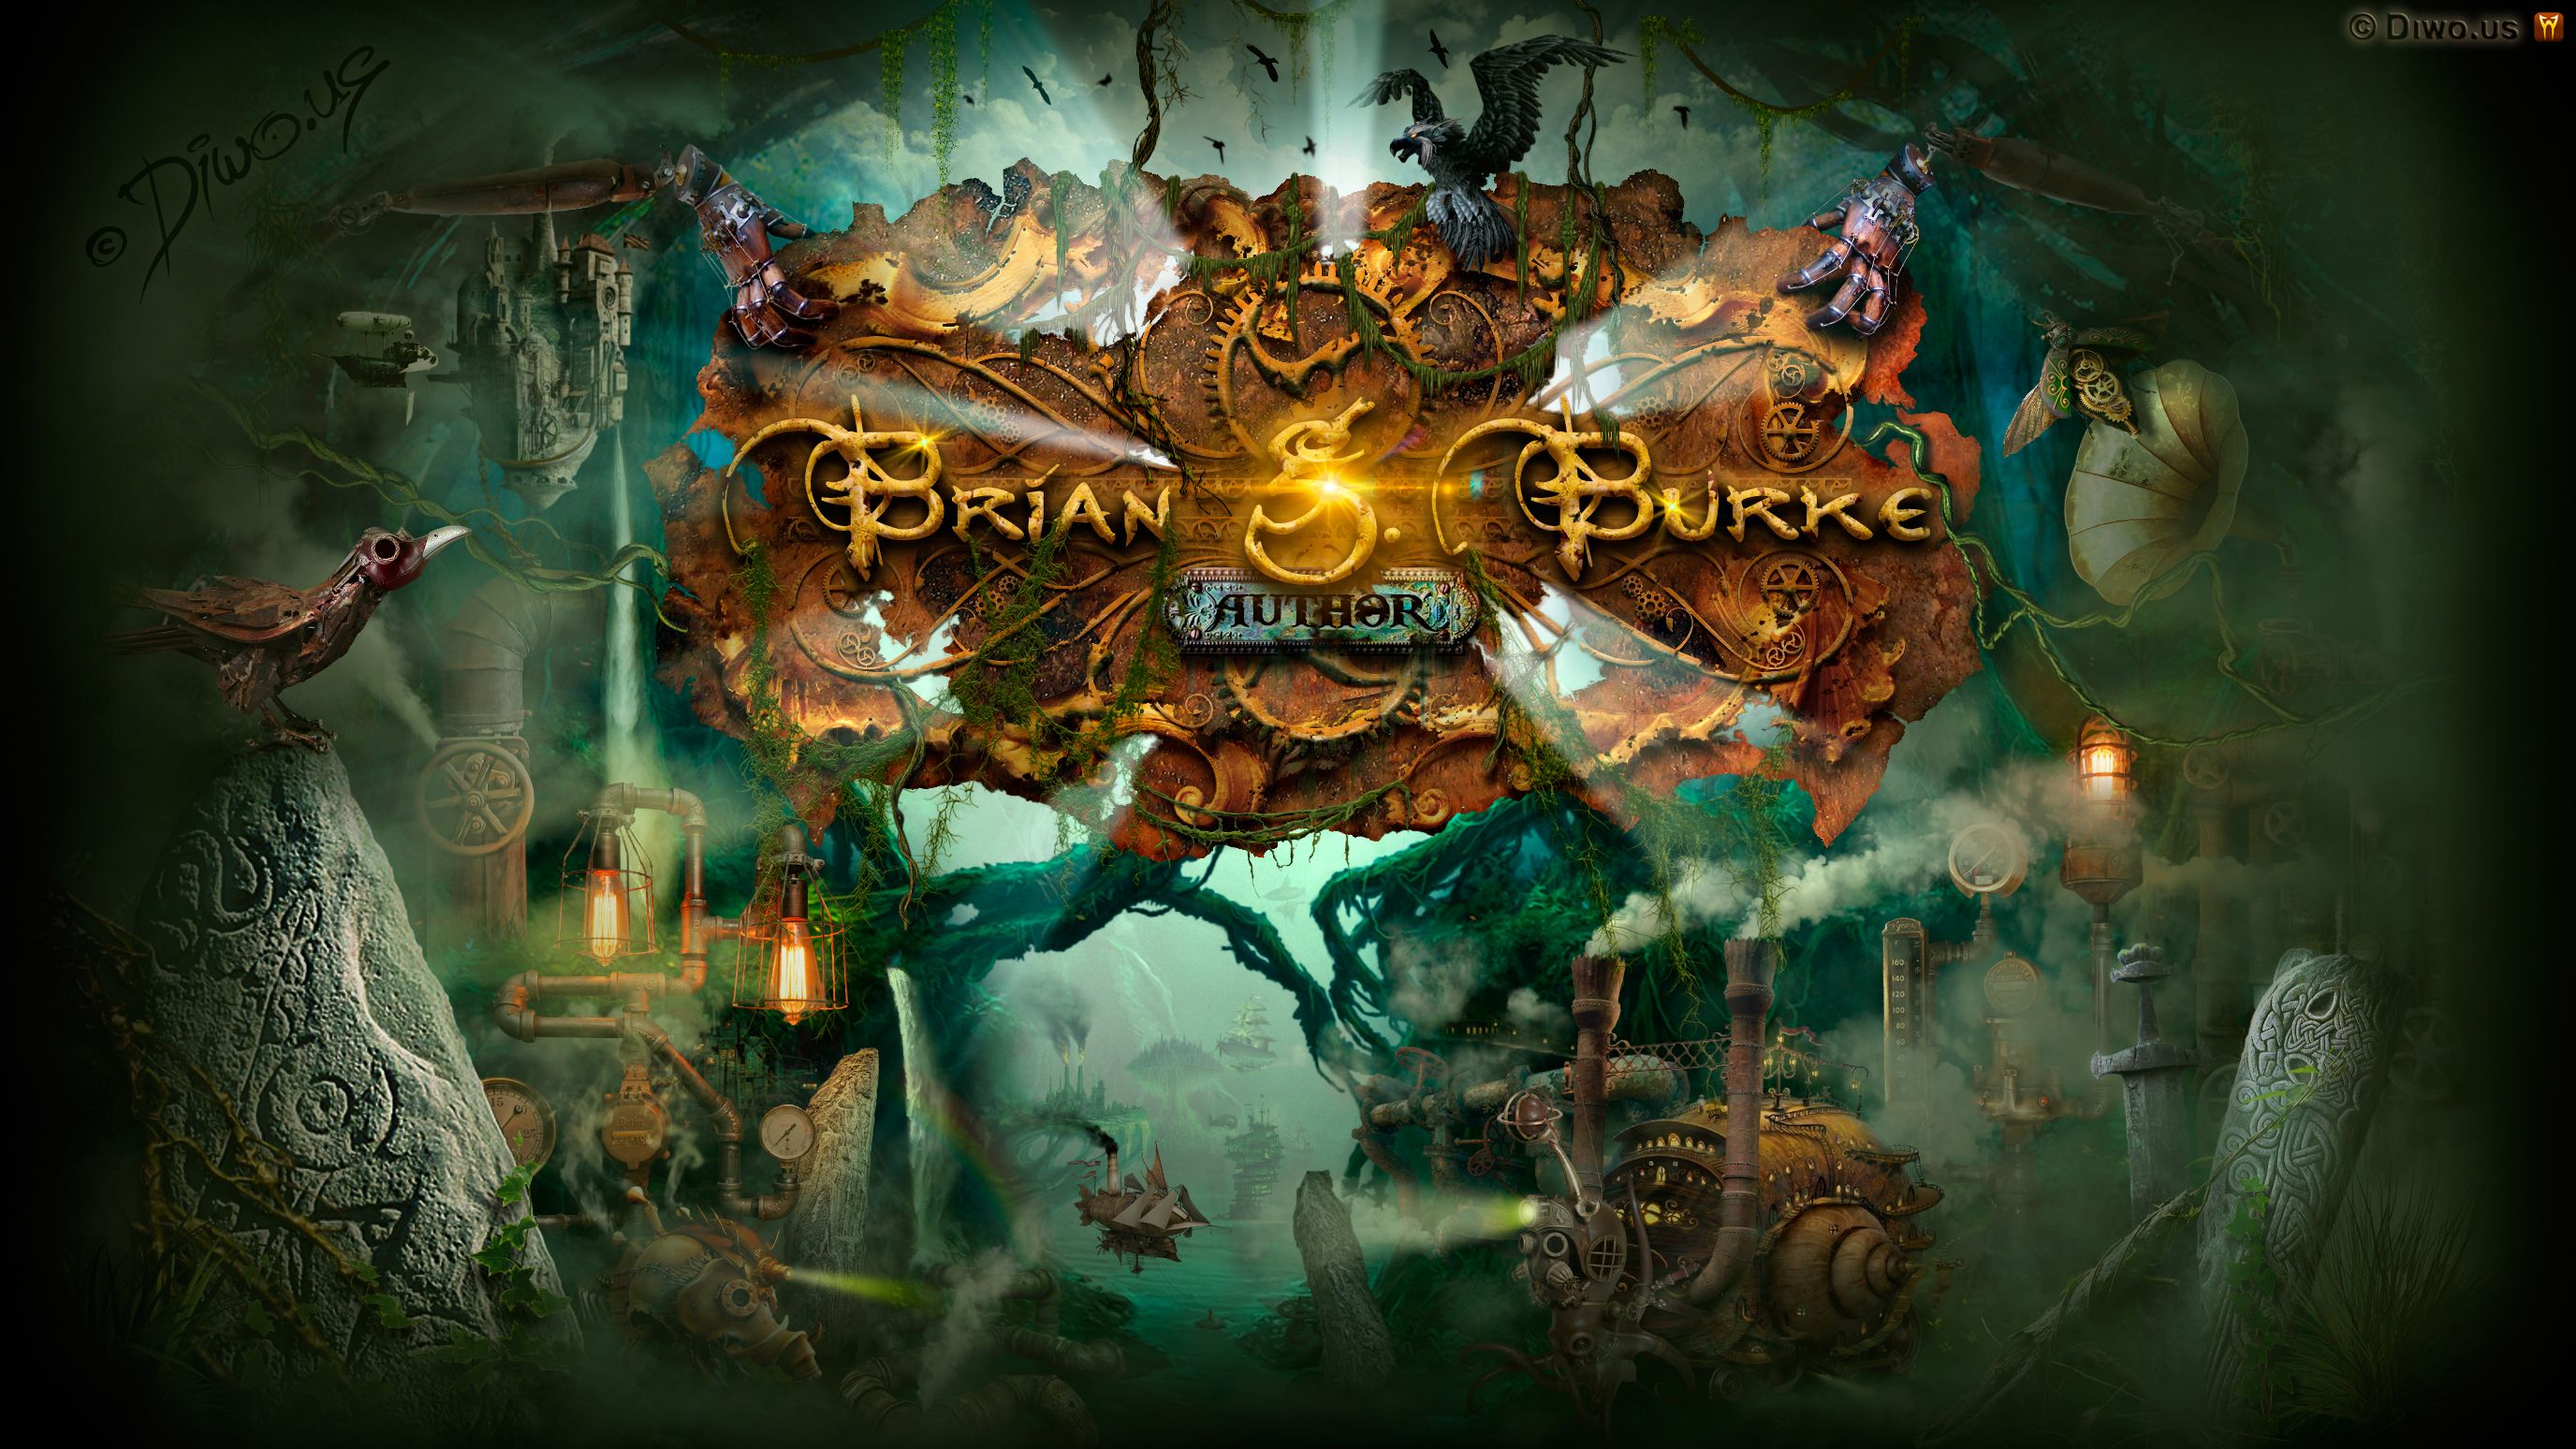 Diwous - project Brian G. Burke, irish writer, author, fantasy, steampunk, celtic mythology, Digital Art